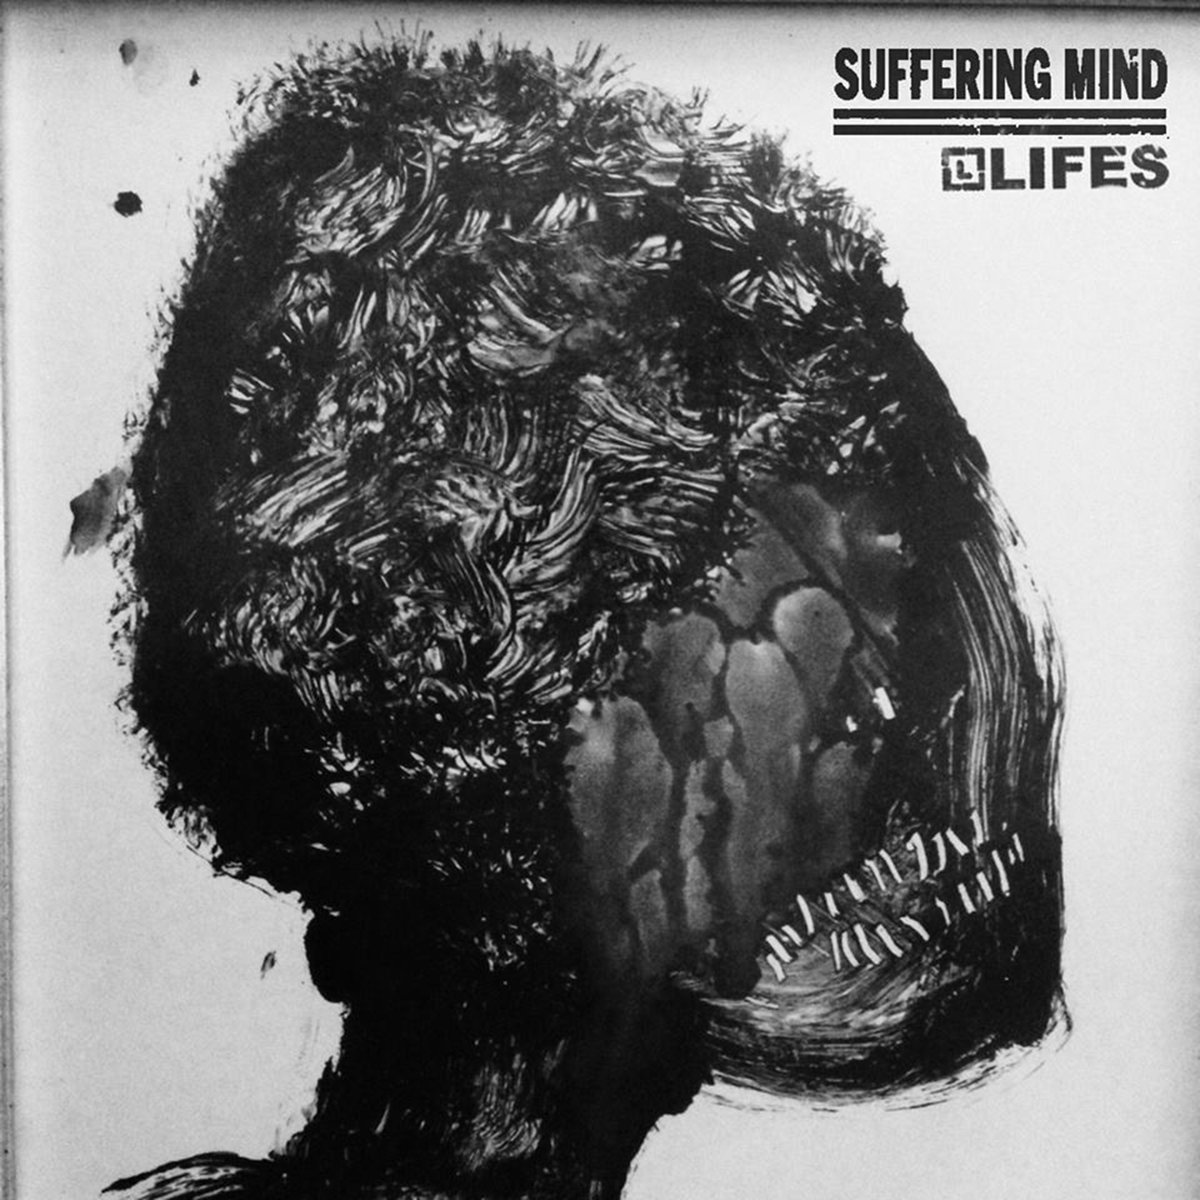 LIFES & Suffering Mind - Split